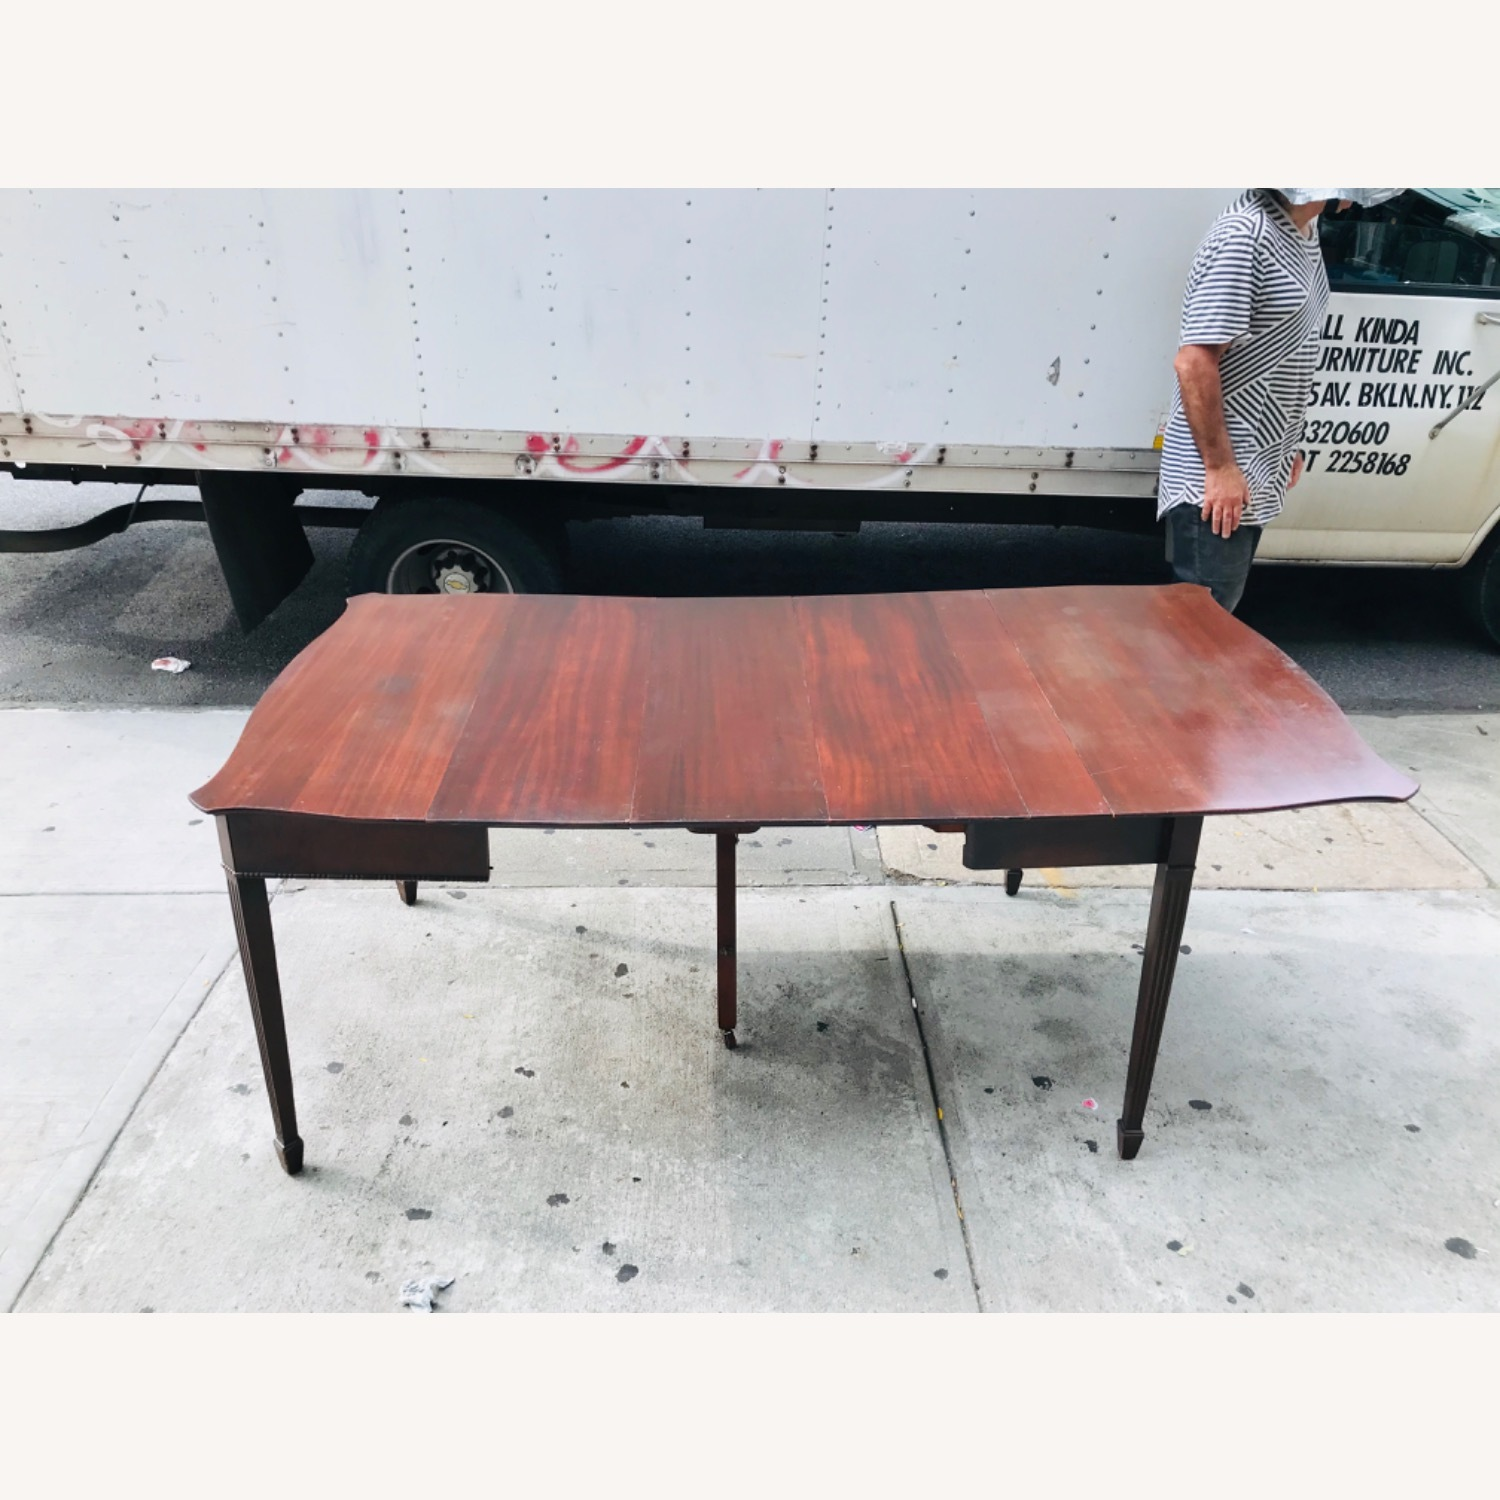 Antique 1920s Mahogany Table w/3 Leaves  - image-22